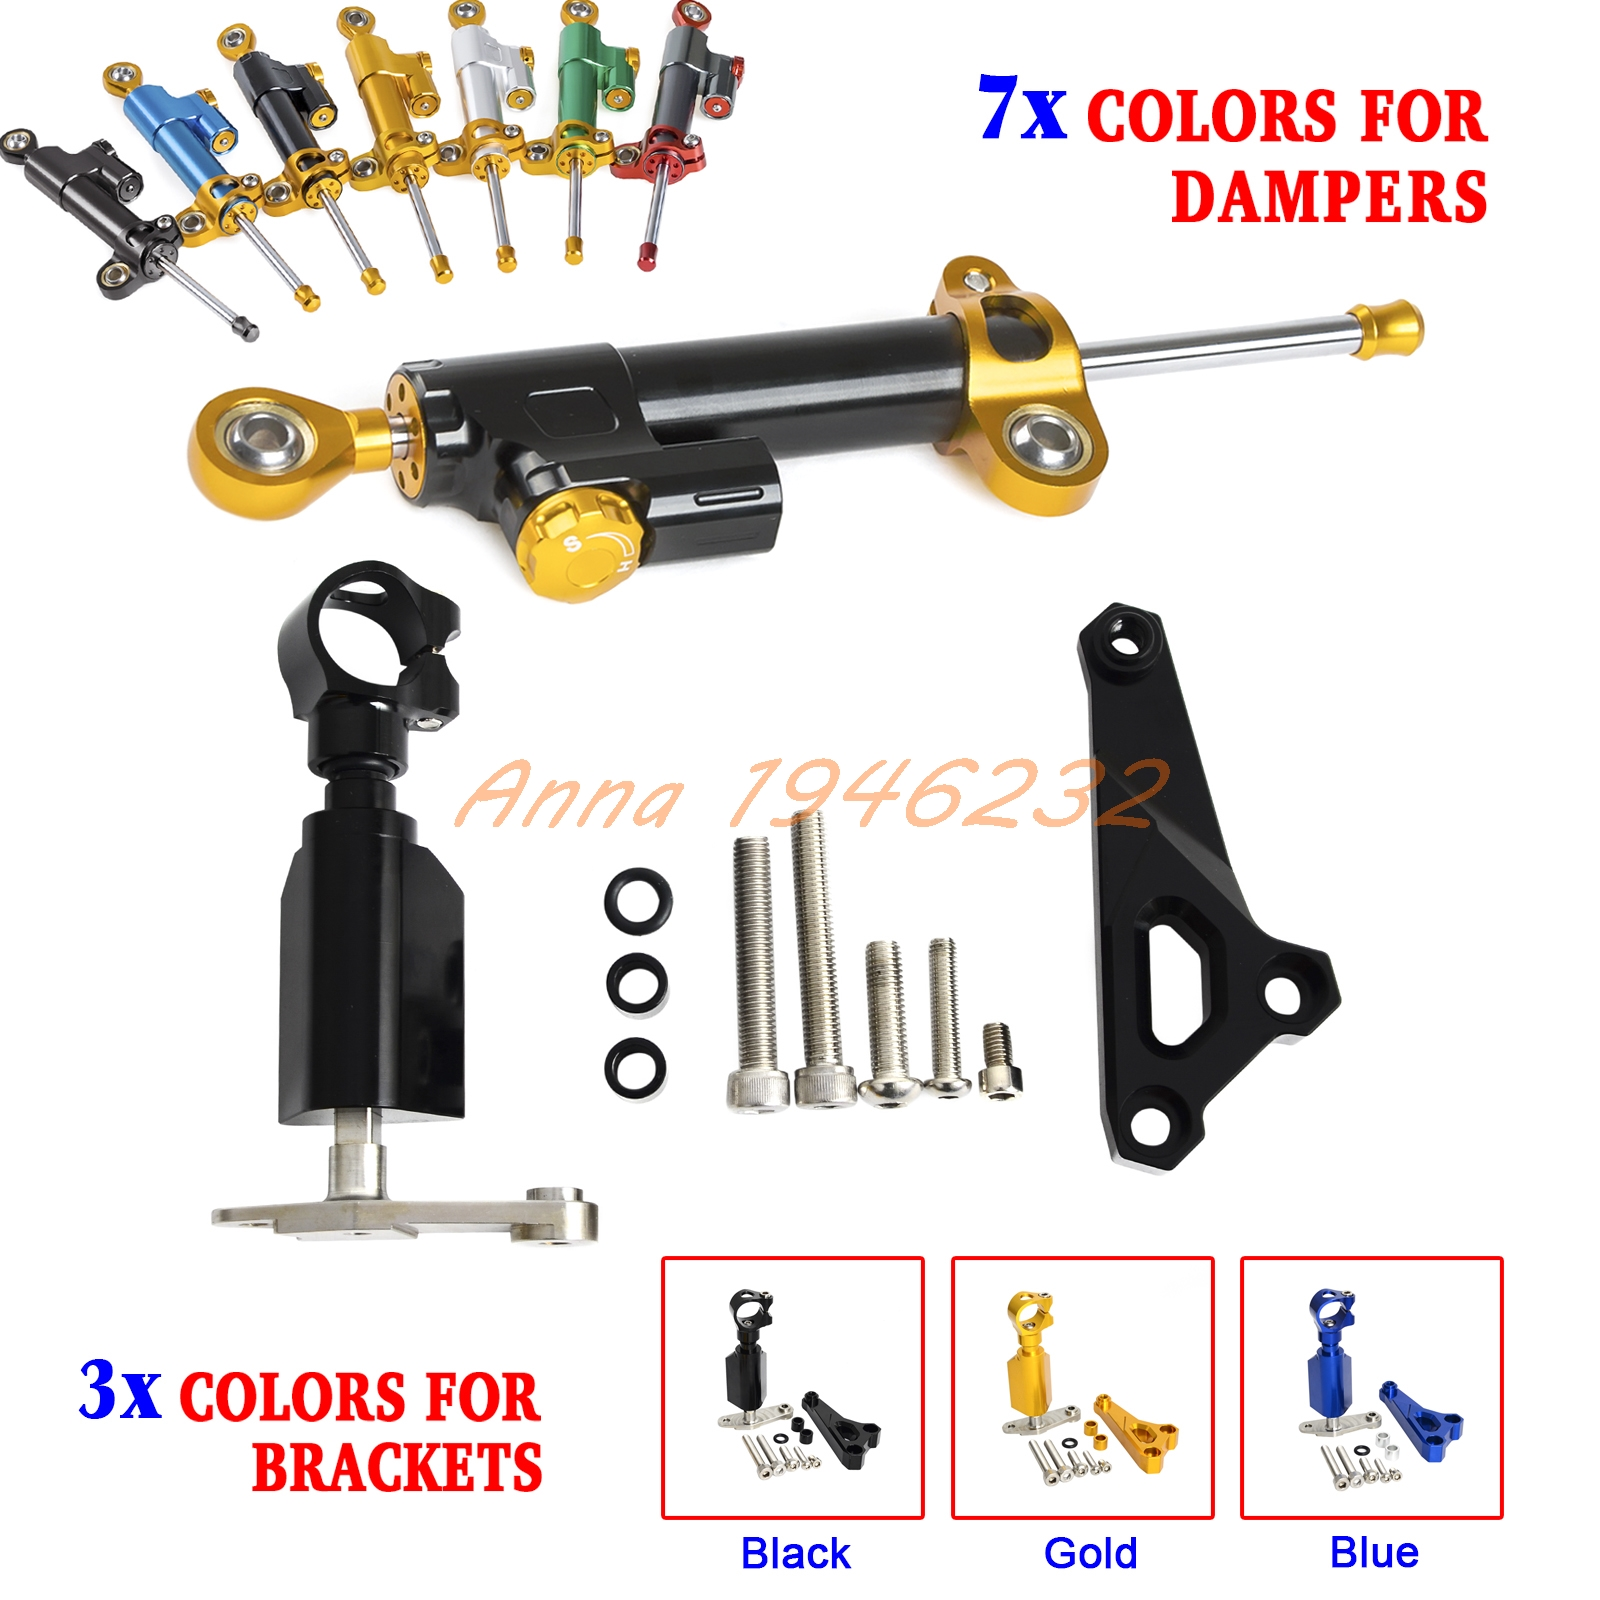 Motorcycle CNC Steering Damper Stabilizer & Bracket For BMW S1000R S1000 R 2014 2015 2016 (Not for RR model) universal new cnc aluminum motorcycle steering damper stabilizer adjustable for yamaha bmw g310r s 1000 rr s1000rr s1000 r hp4